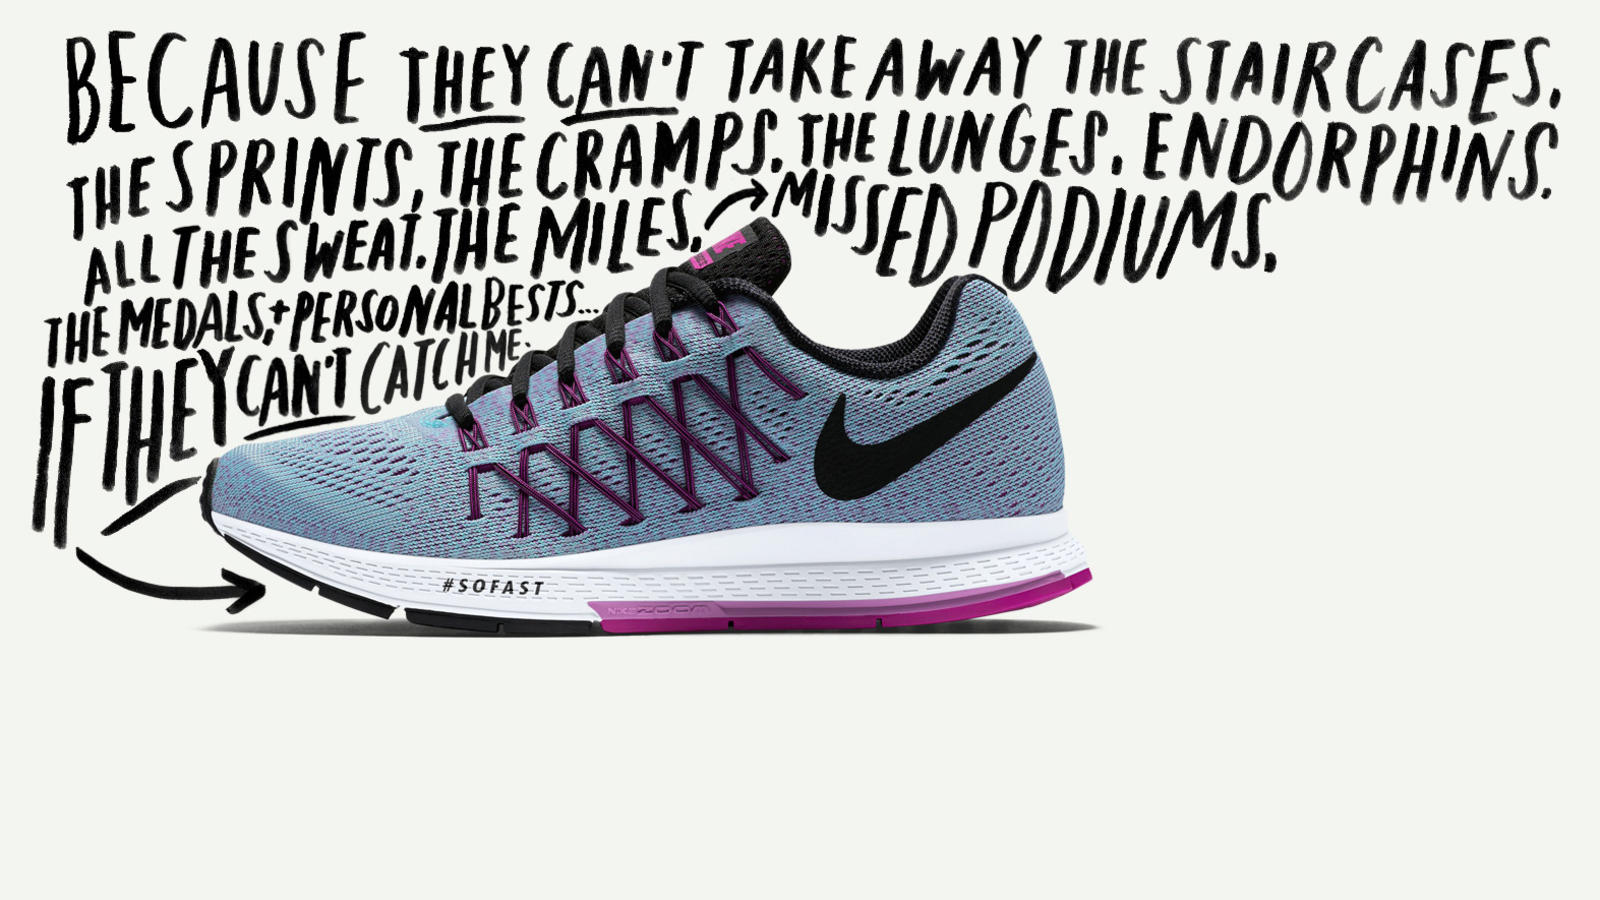 inside new nikeid personalization program nike news